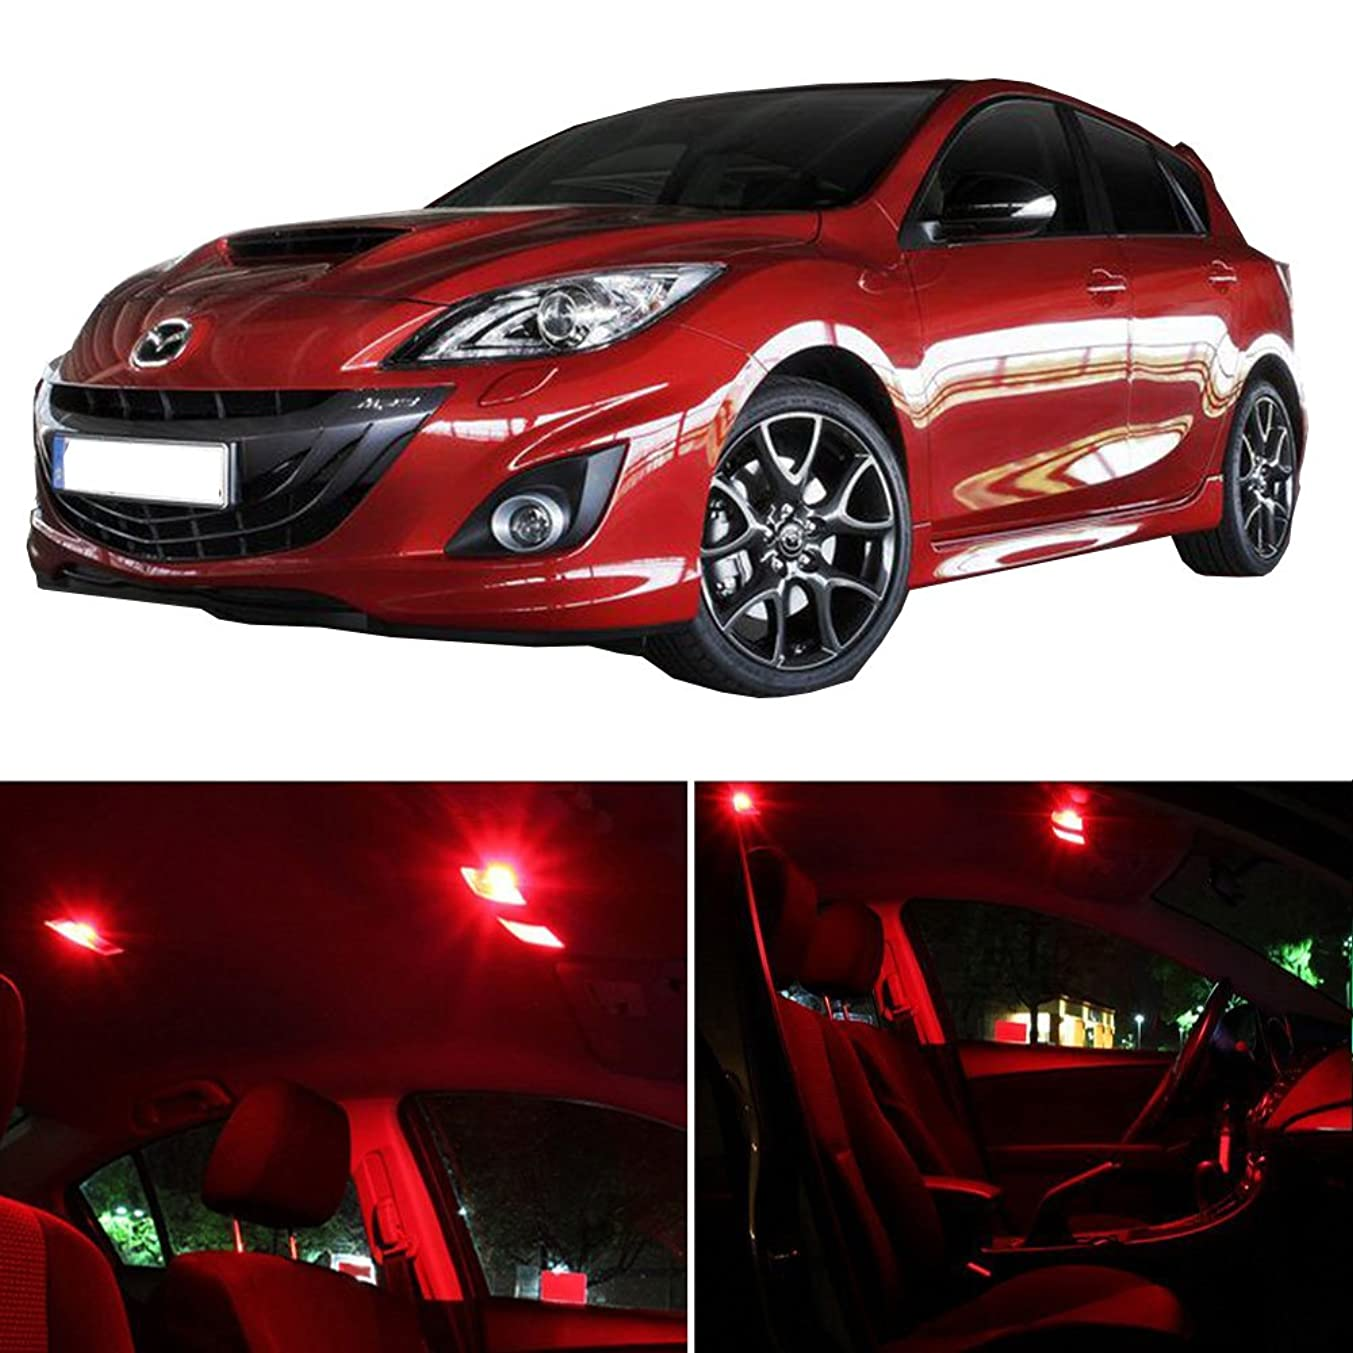 cciyu 11 Pack Red LED Package Kit LED Interior Lights Accessories Replacement Parts Replacement fit for 2013-2017 Mazda 3